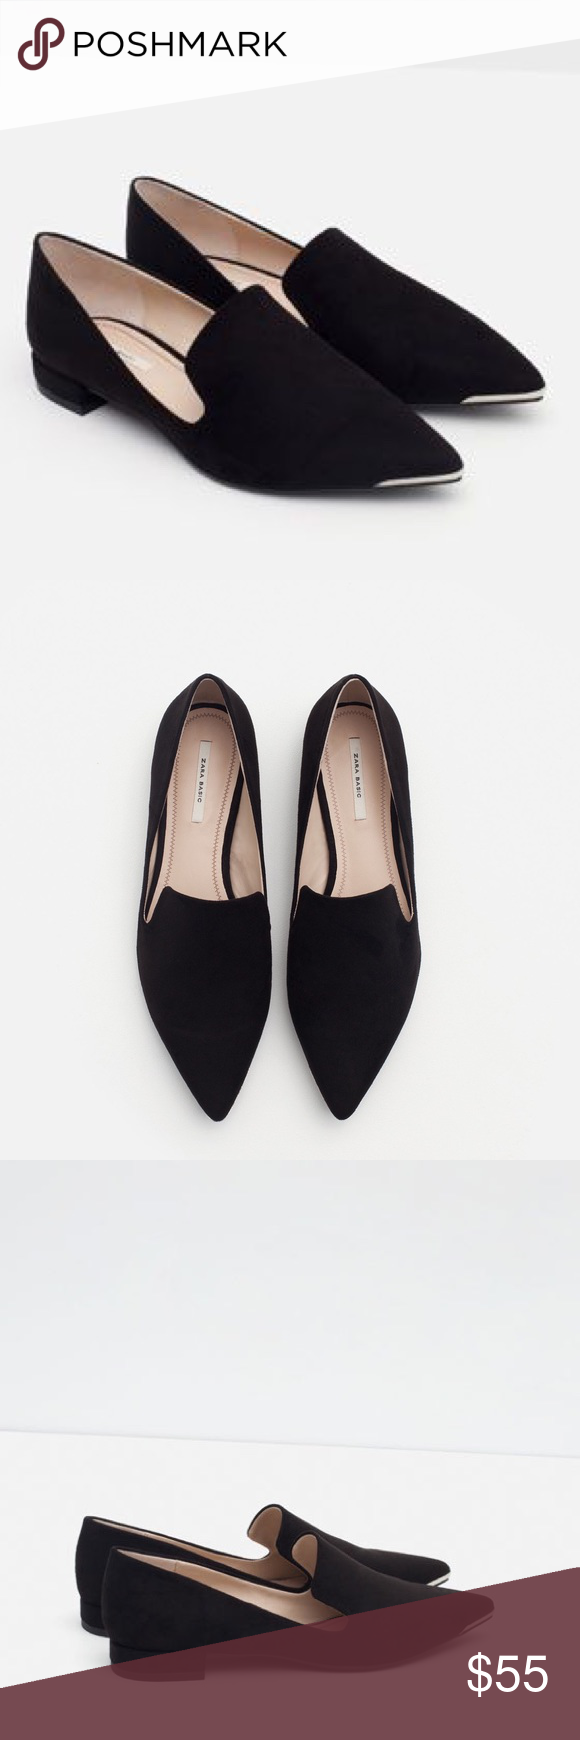 5ac93bb619a Flats with metal toe Pointed toe..... will give any outfit a sharp look Zara  Shoes Flats   Loafers